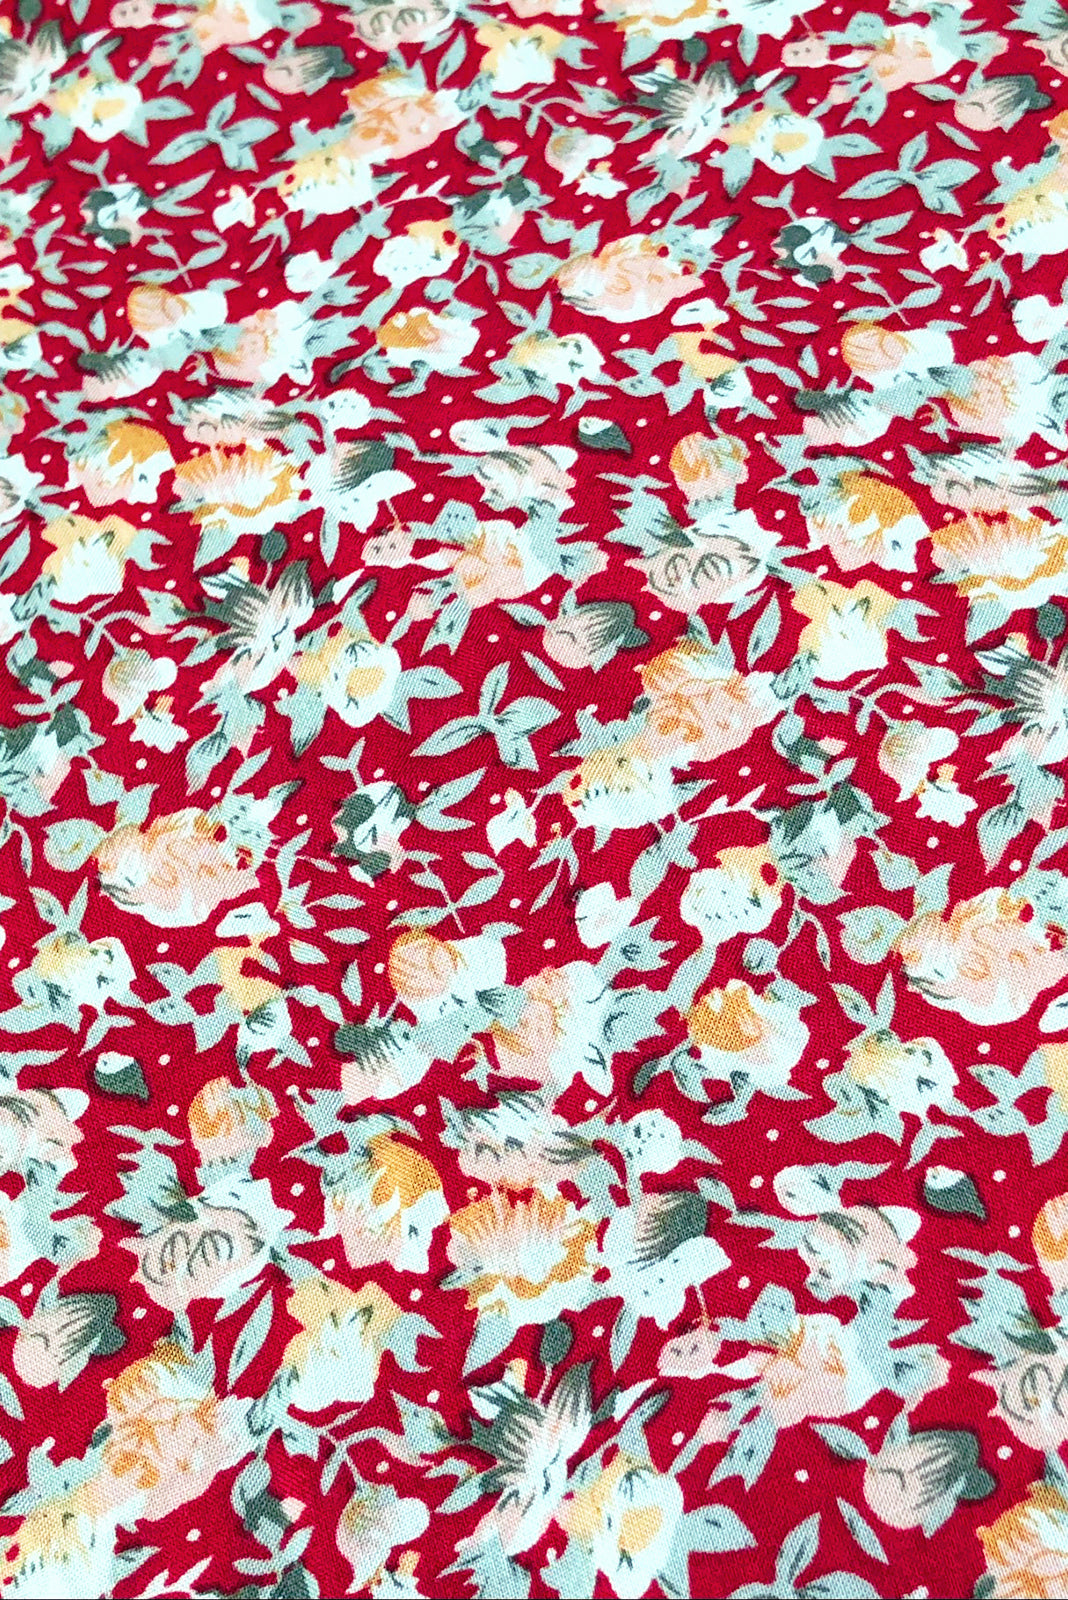 Fabric Swatch o fJuniper Cherry Blooms Maxi Dress featuring 100% viscose in red base with peachy pink vintage floral print.